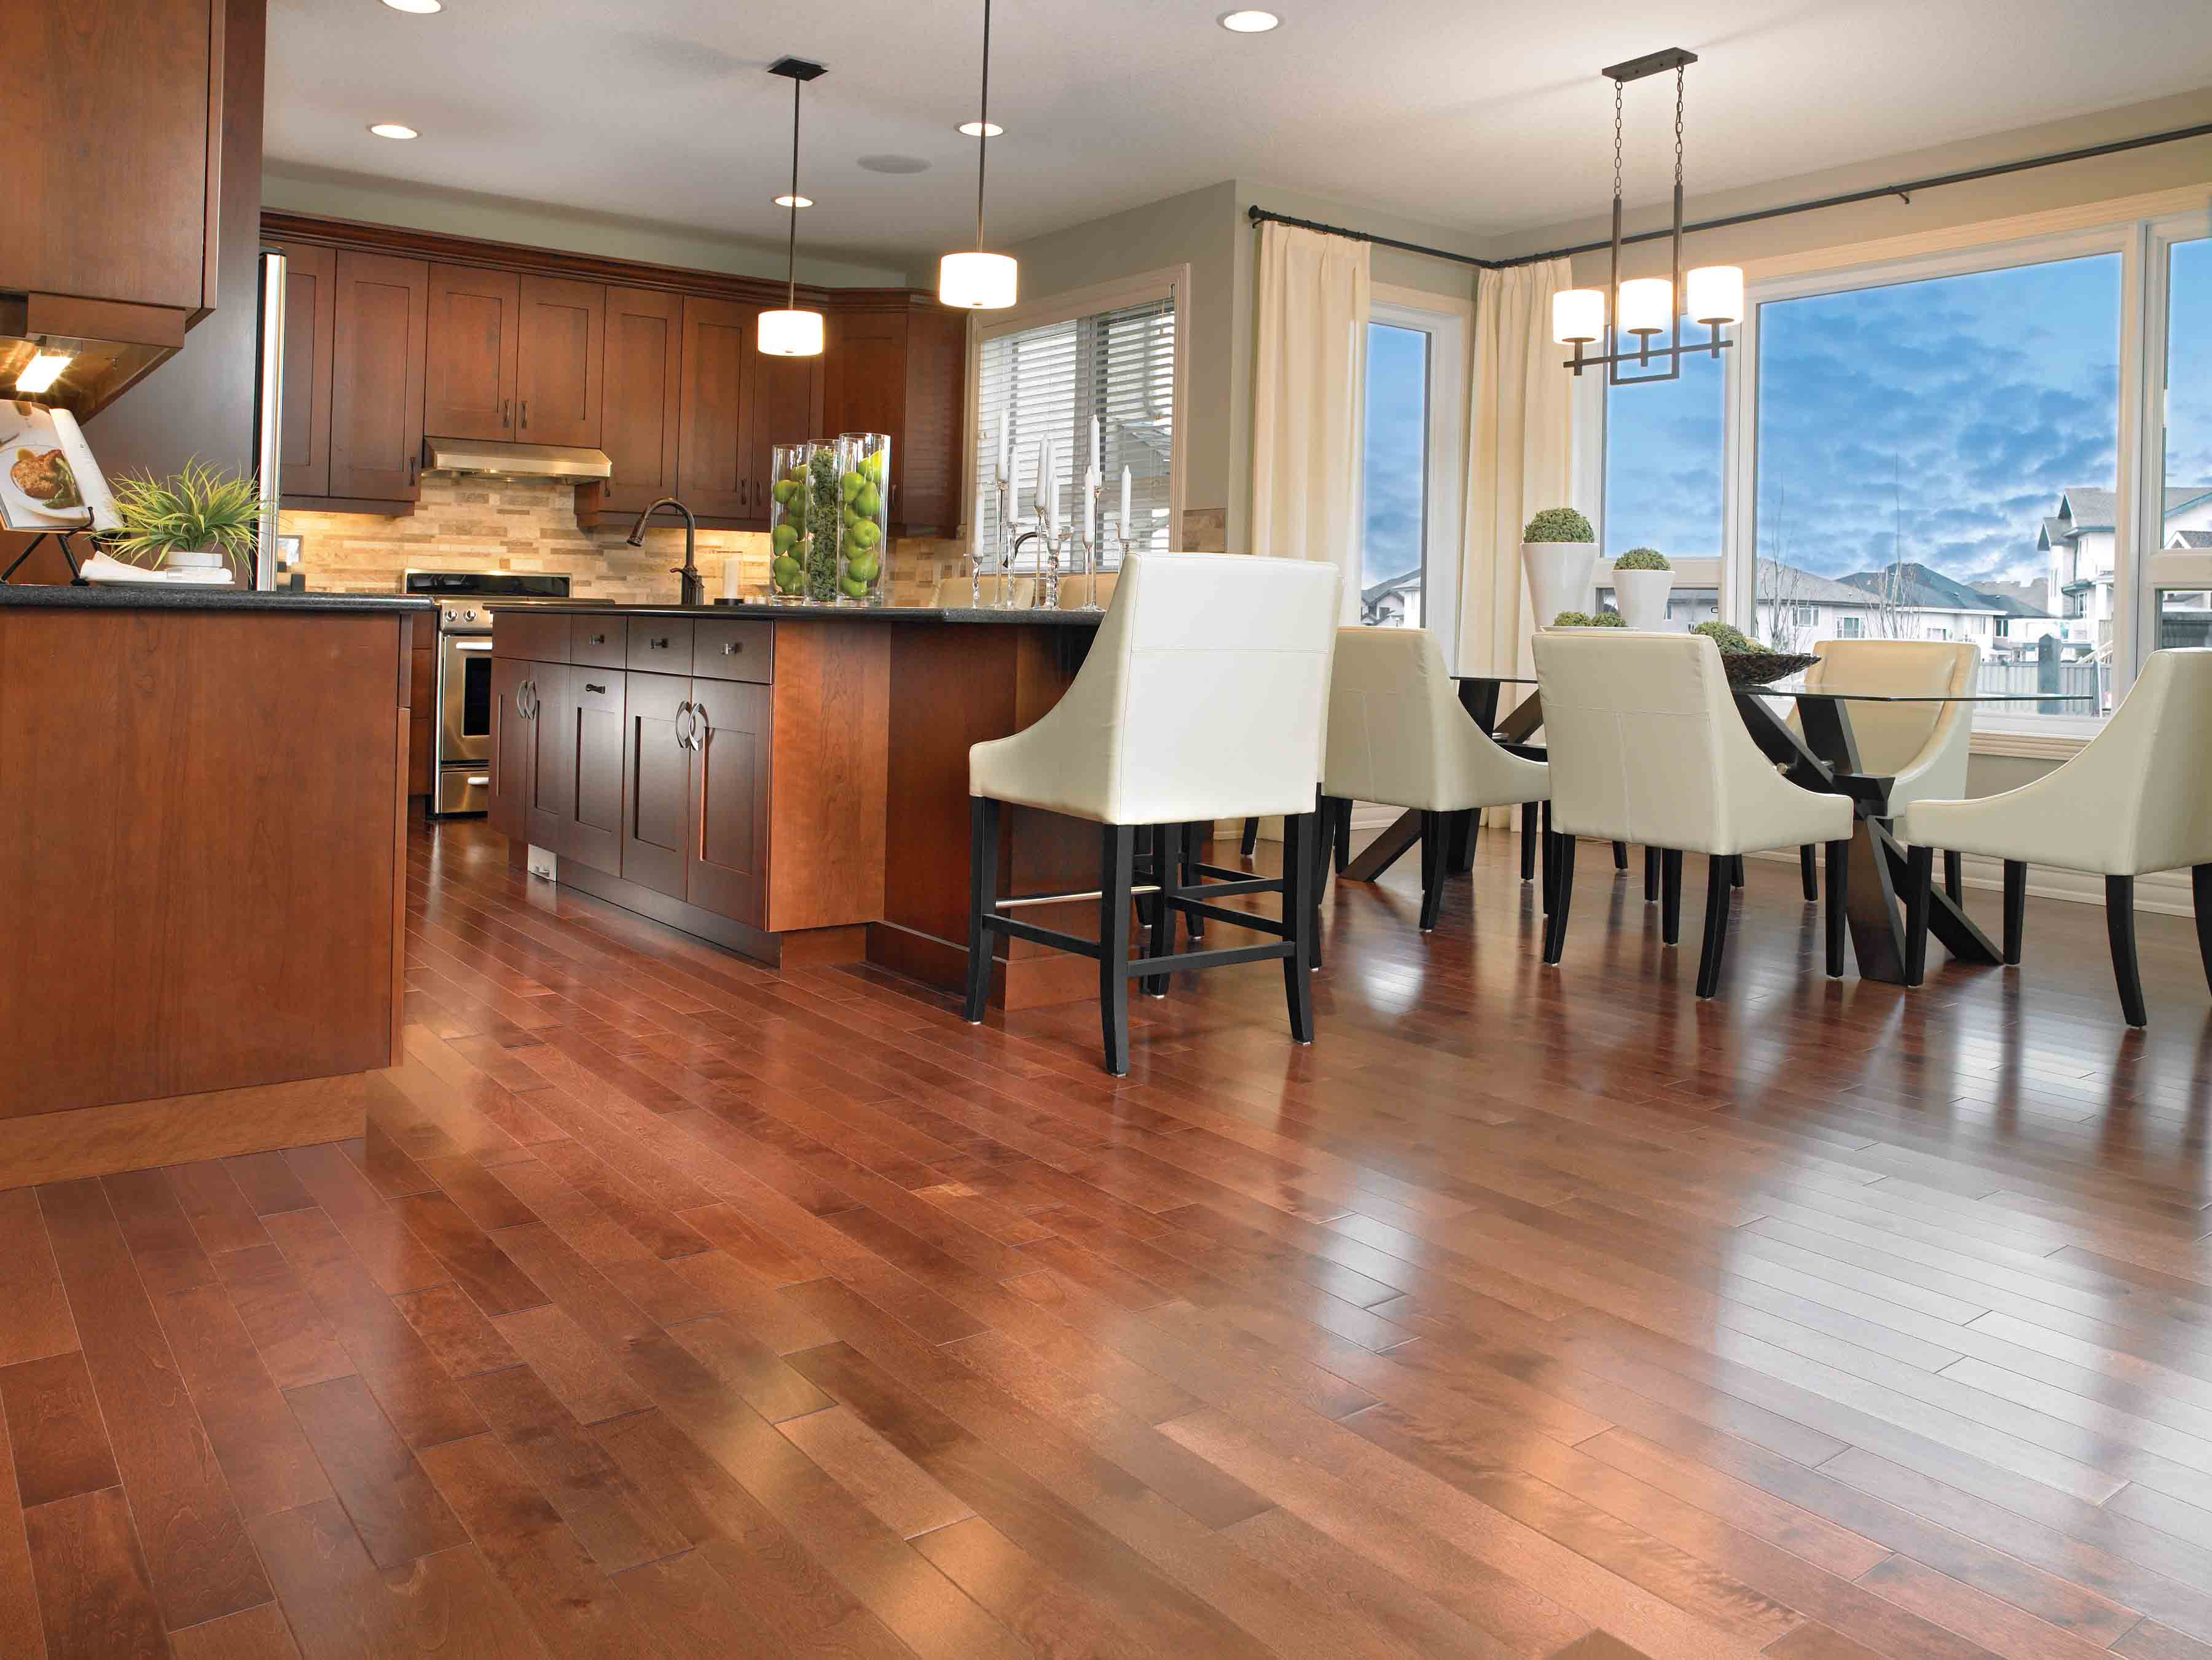 adhogg_builder_hardwood_floor_refinishing-7